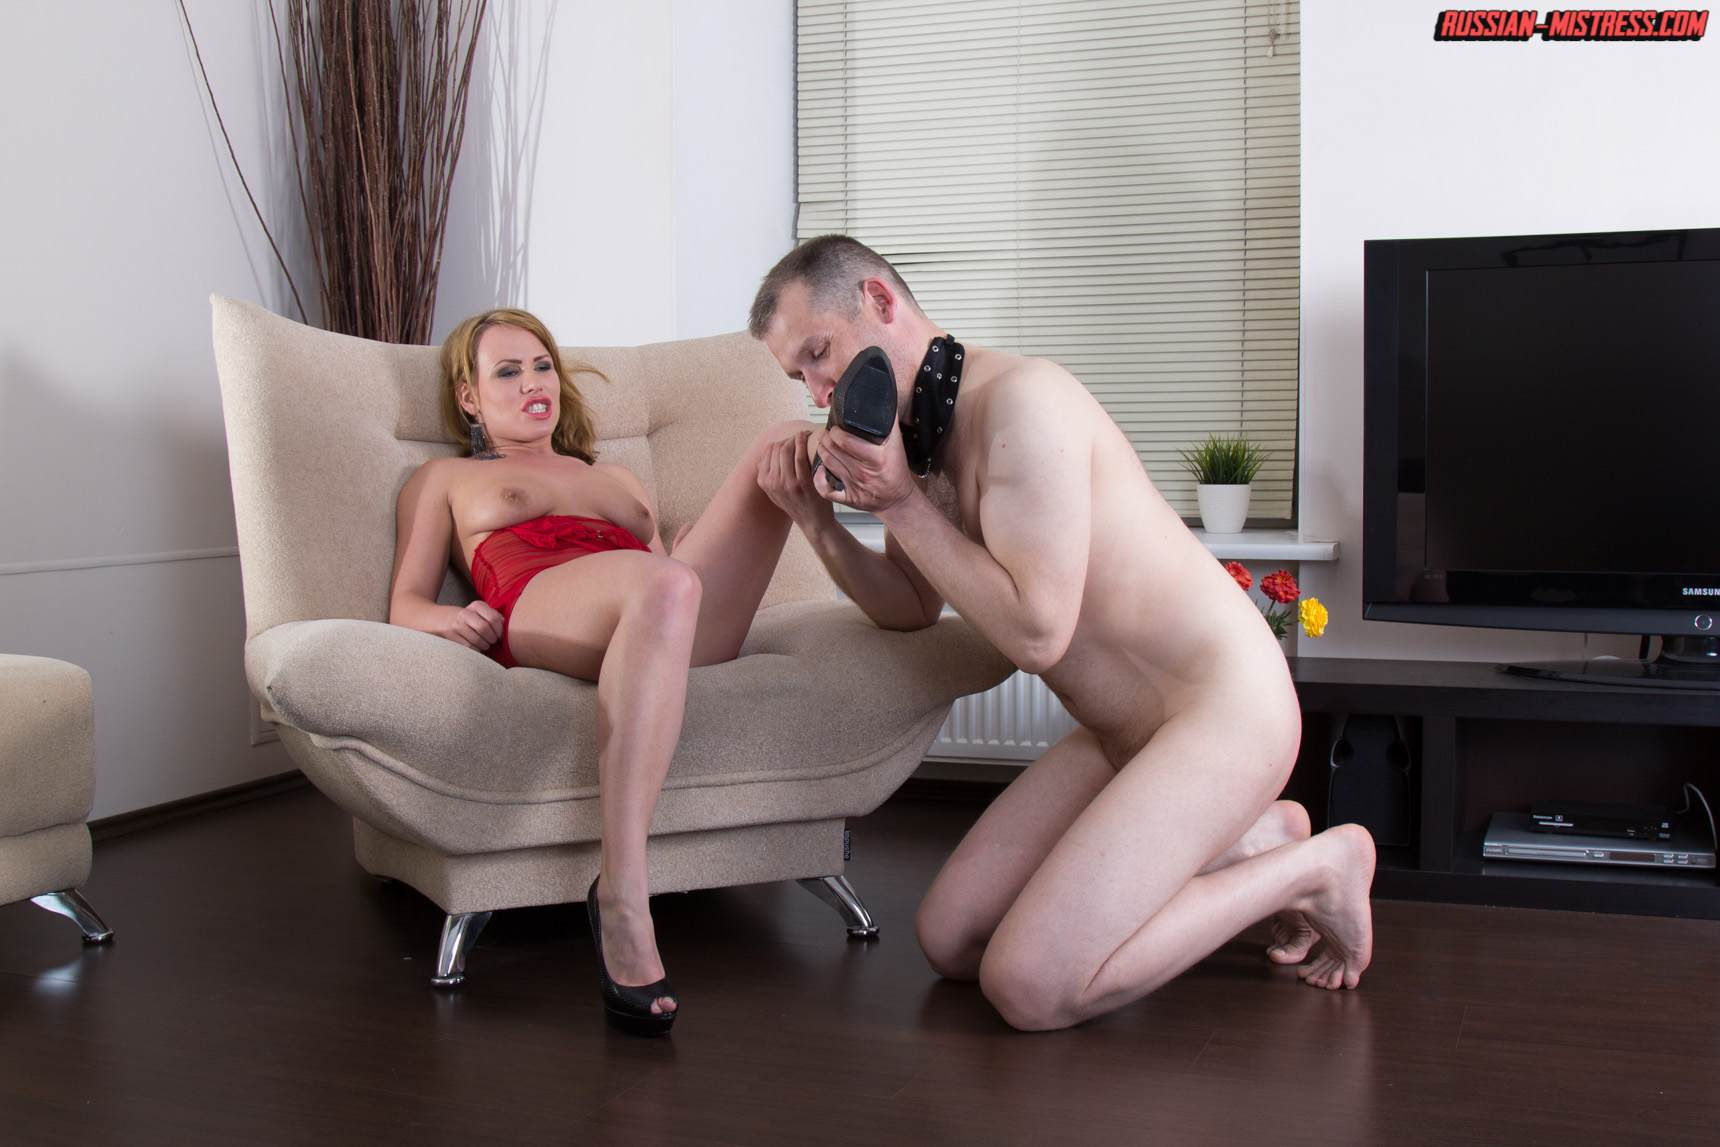 Picture #8 of Cruel bitch is loving wearing red lingerie and heels when pushing slave's face in between her butt cheeks and then peeing then over him